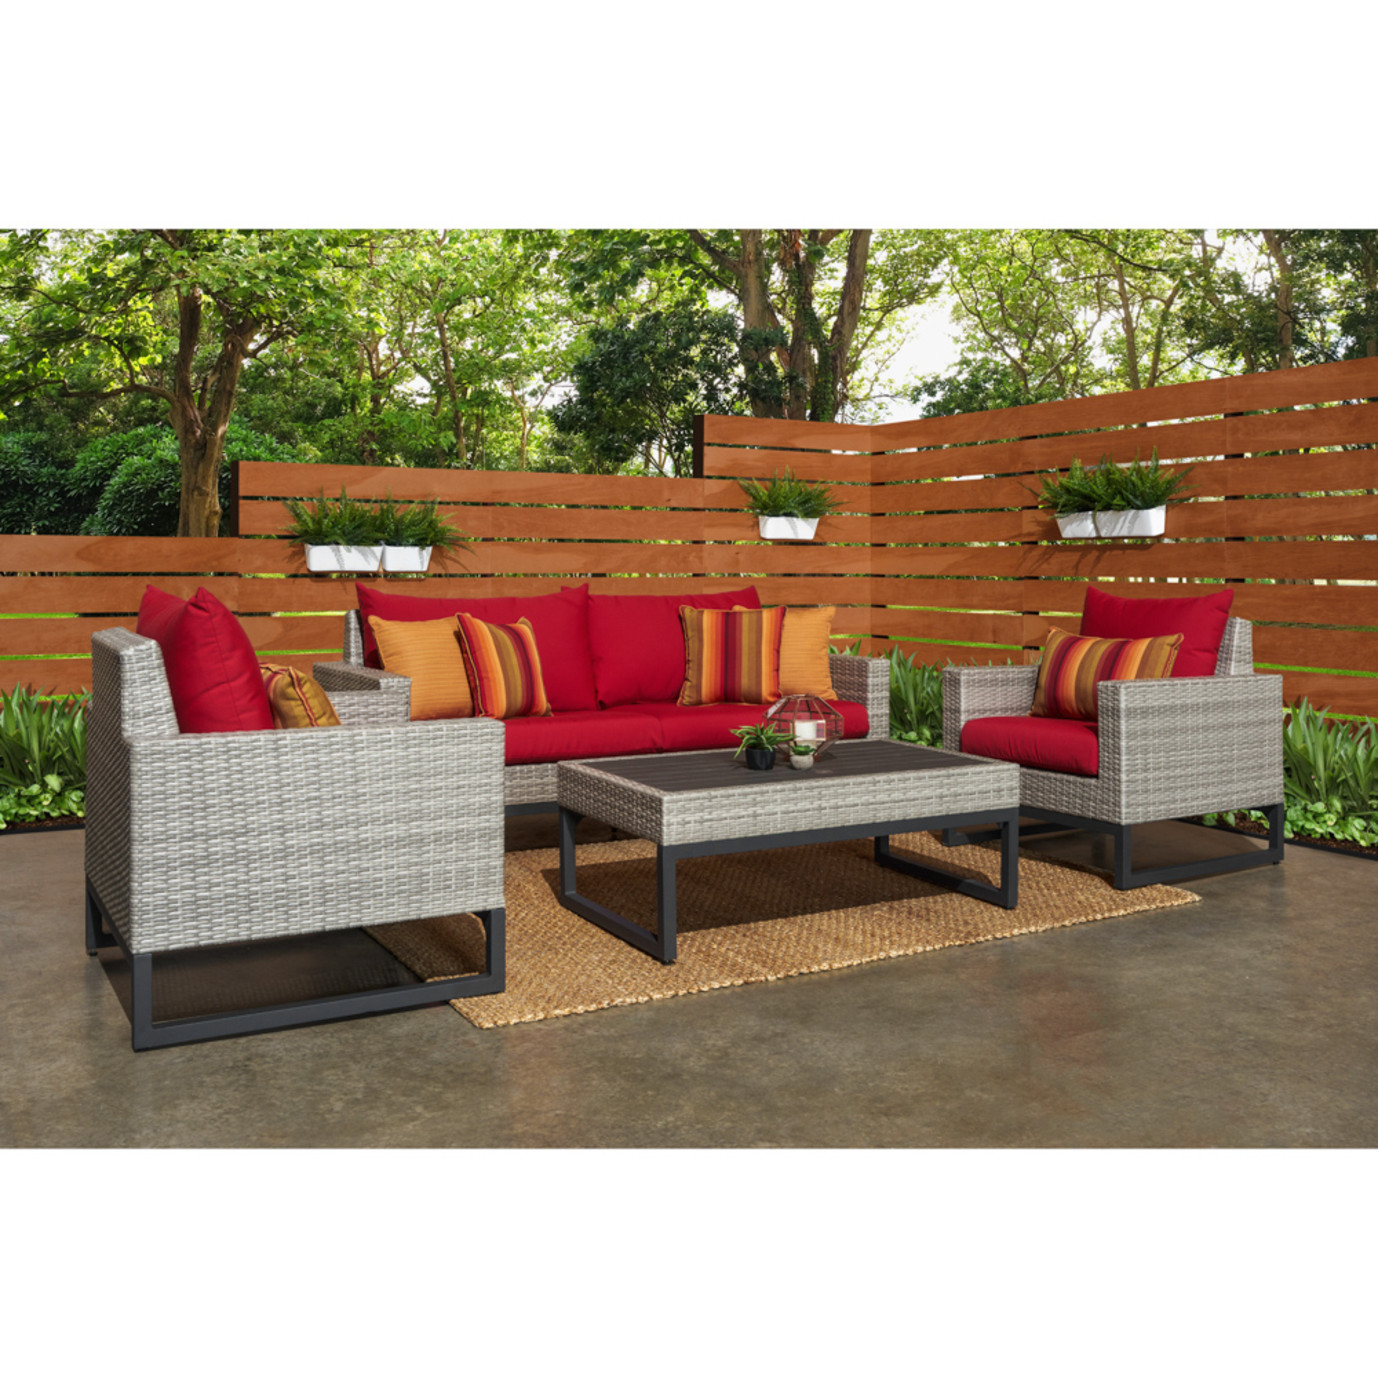 Milo™Gray 4pc Seating Set - Sunset Red